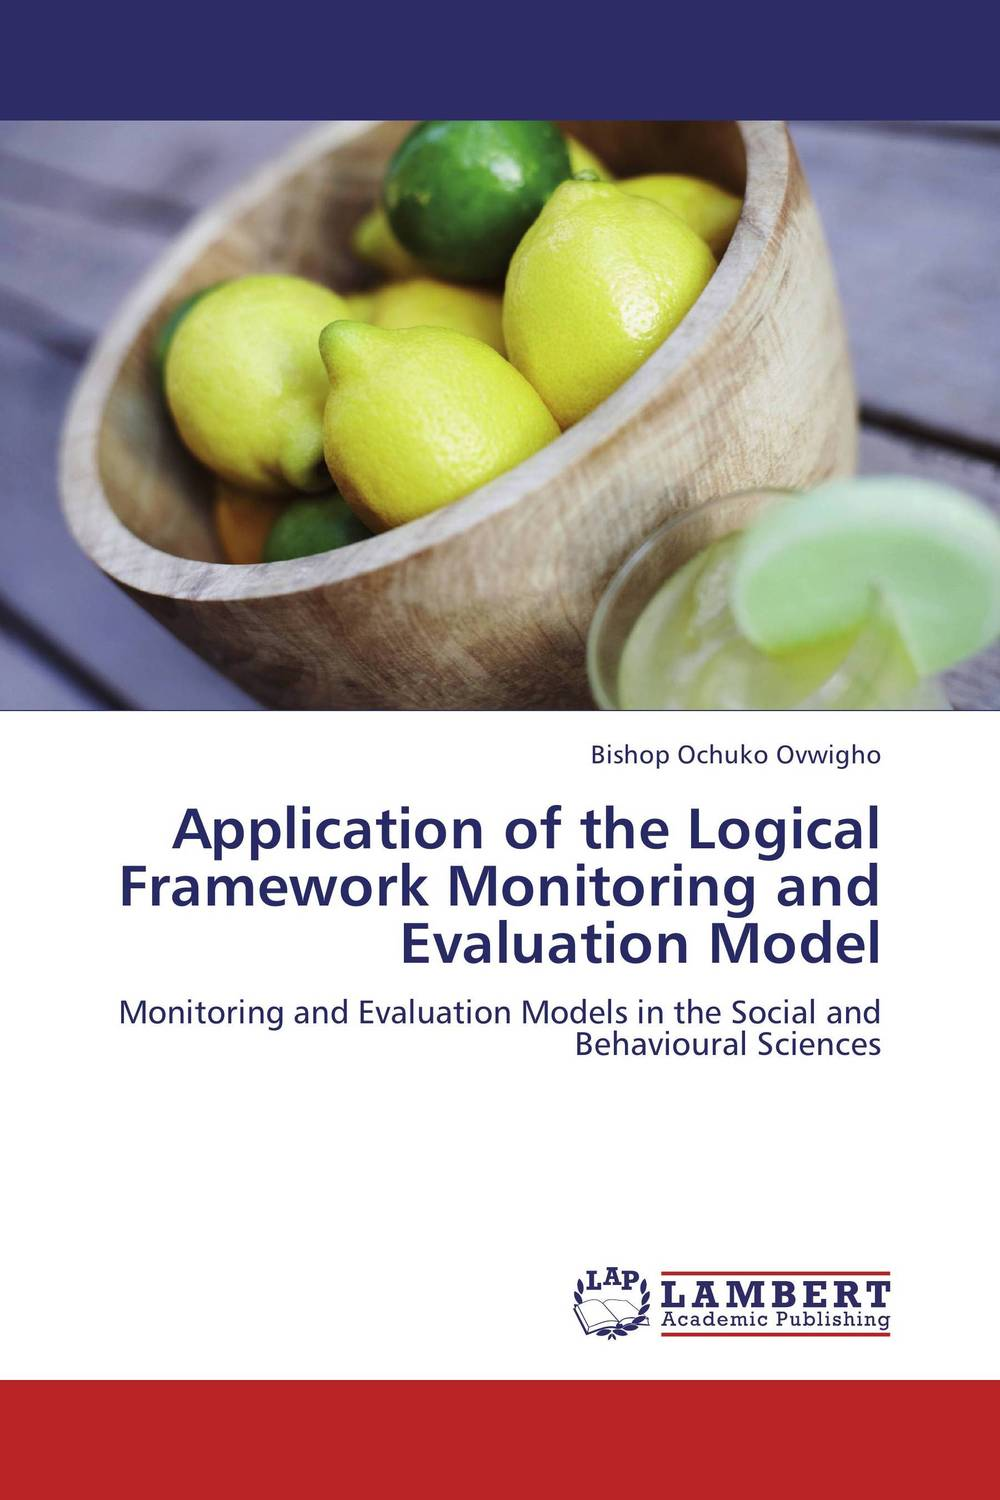 Application of the Logical Framework Monitoring and Evaluation Model